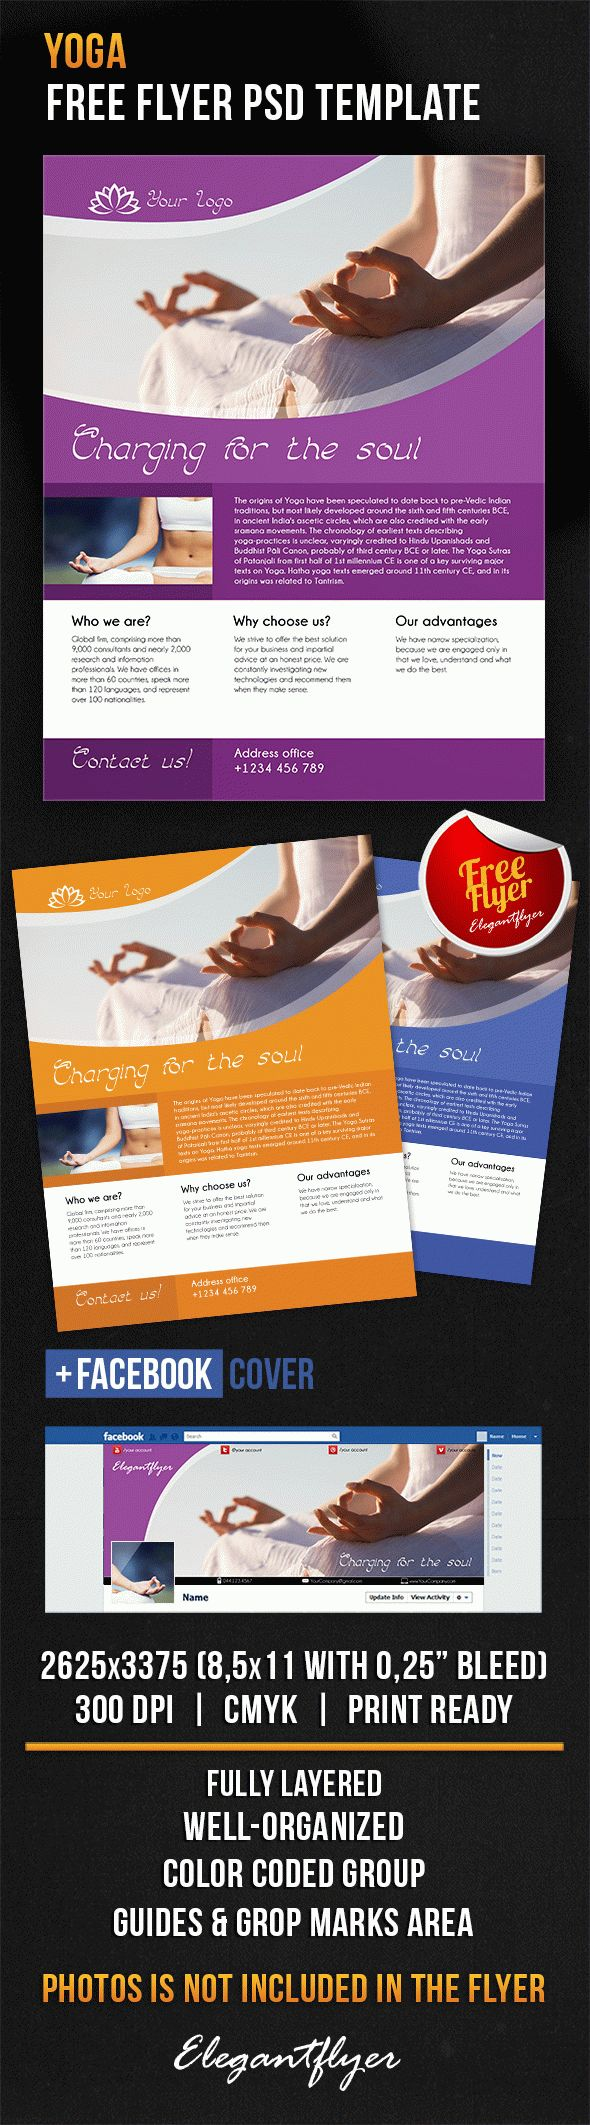 Yoga – Free Flyer PSD Template + Facebook Cover